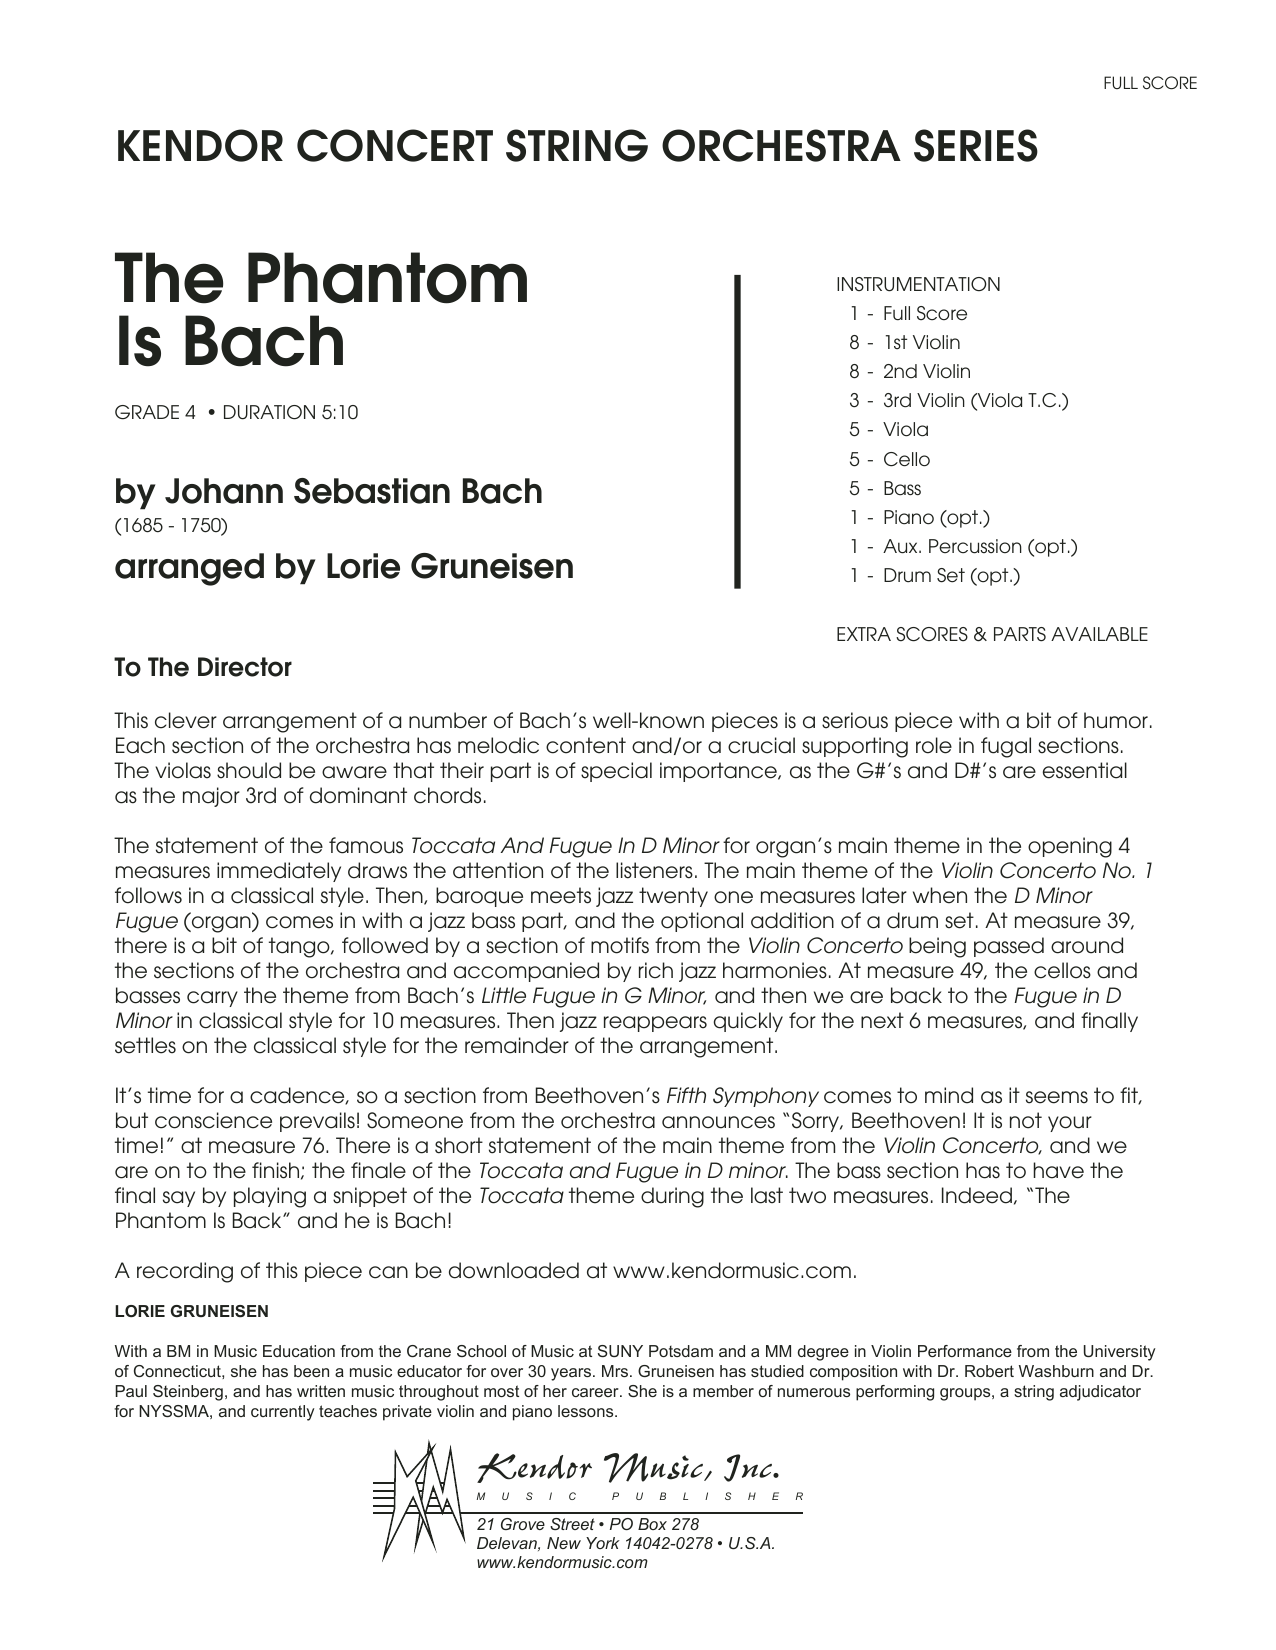 The Phantom Is Bach - Full Score